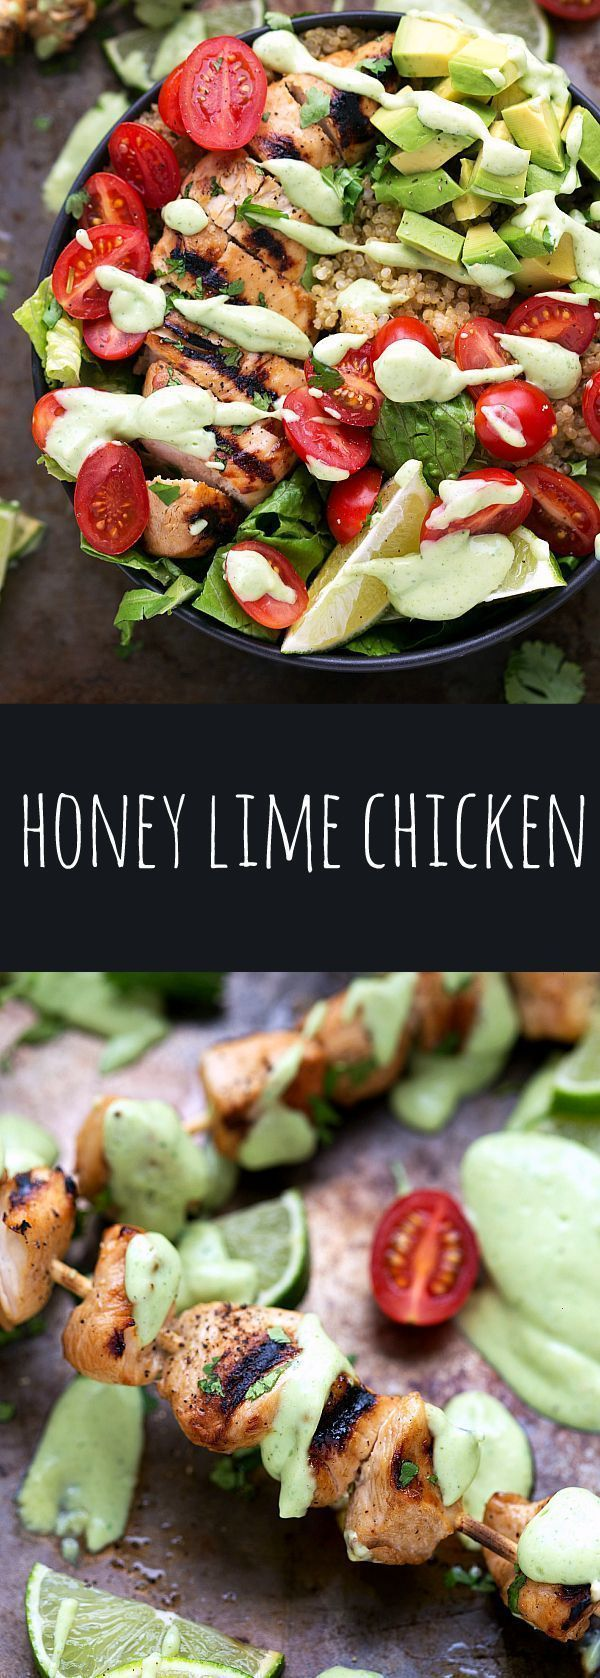 #marinated #honeylime #chicken #avocado #yogurt #greek #sauce #best #with #the #aThe BEST marinated honey-lime chicken with a Greek yogurt avocado sauceThe BEST marinated honey-lime chicken with a Greek yogurt avocado sauce #honeylimechicken #marinated #honeylime #chicken #avocado #yogurt #greek #sauce #best #with #the #aThe BEST marinated honey-lime chicken with a Greek yogurt avocado sauceThe BEST marinated honey-lime chicken with a Greek yogurt avocado sauce #honeylimechicken #marinated #hone #honeylimechicken